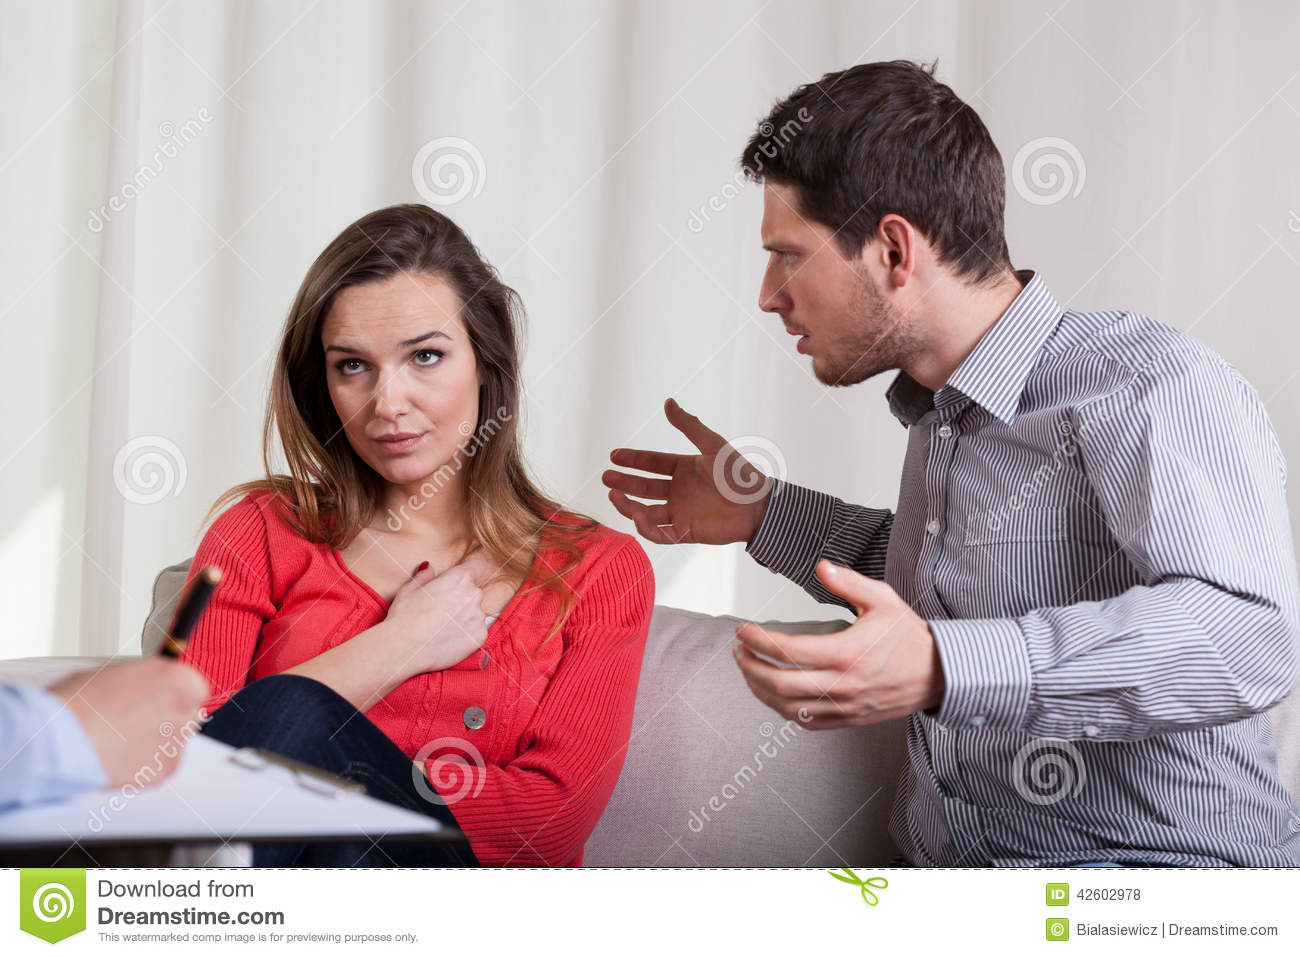 Couple having argument on therapy